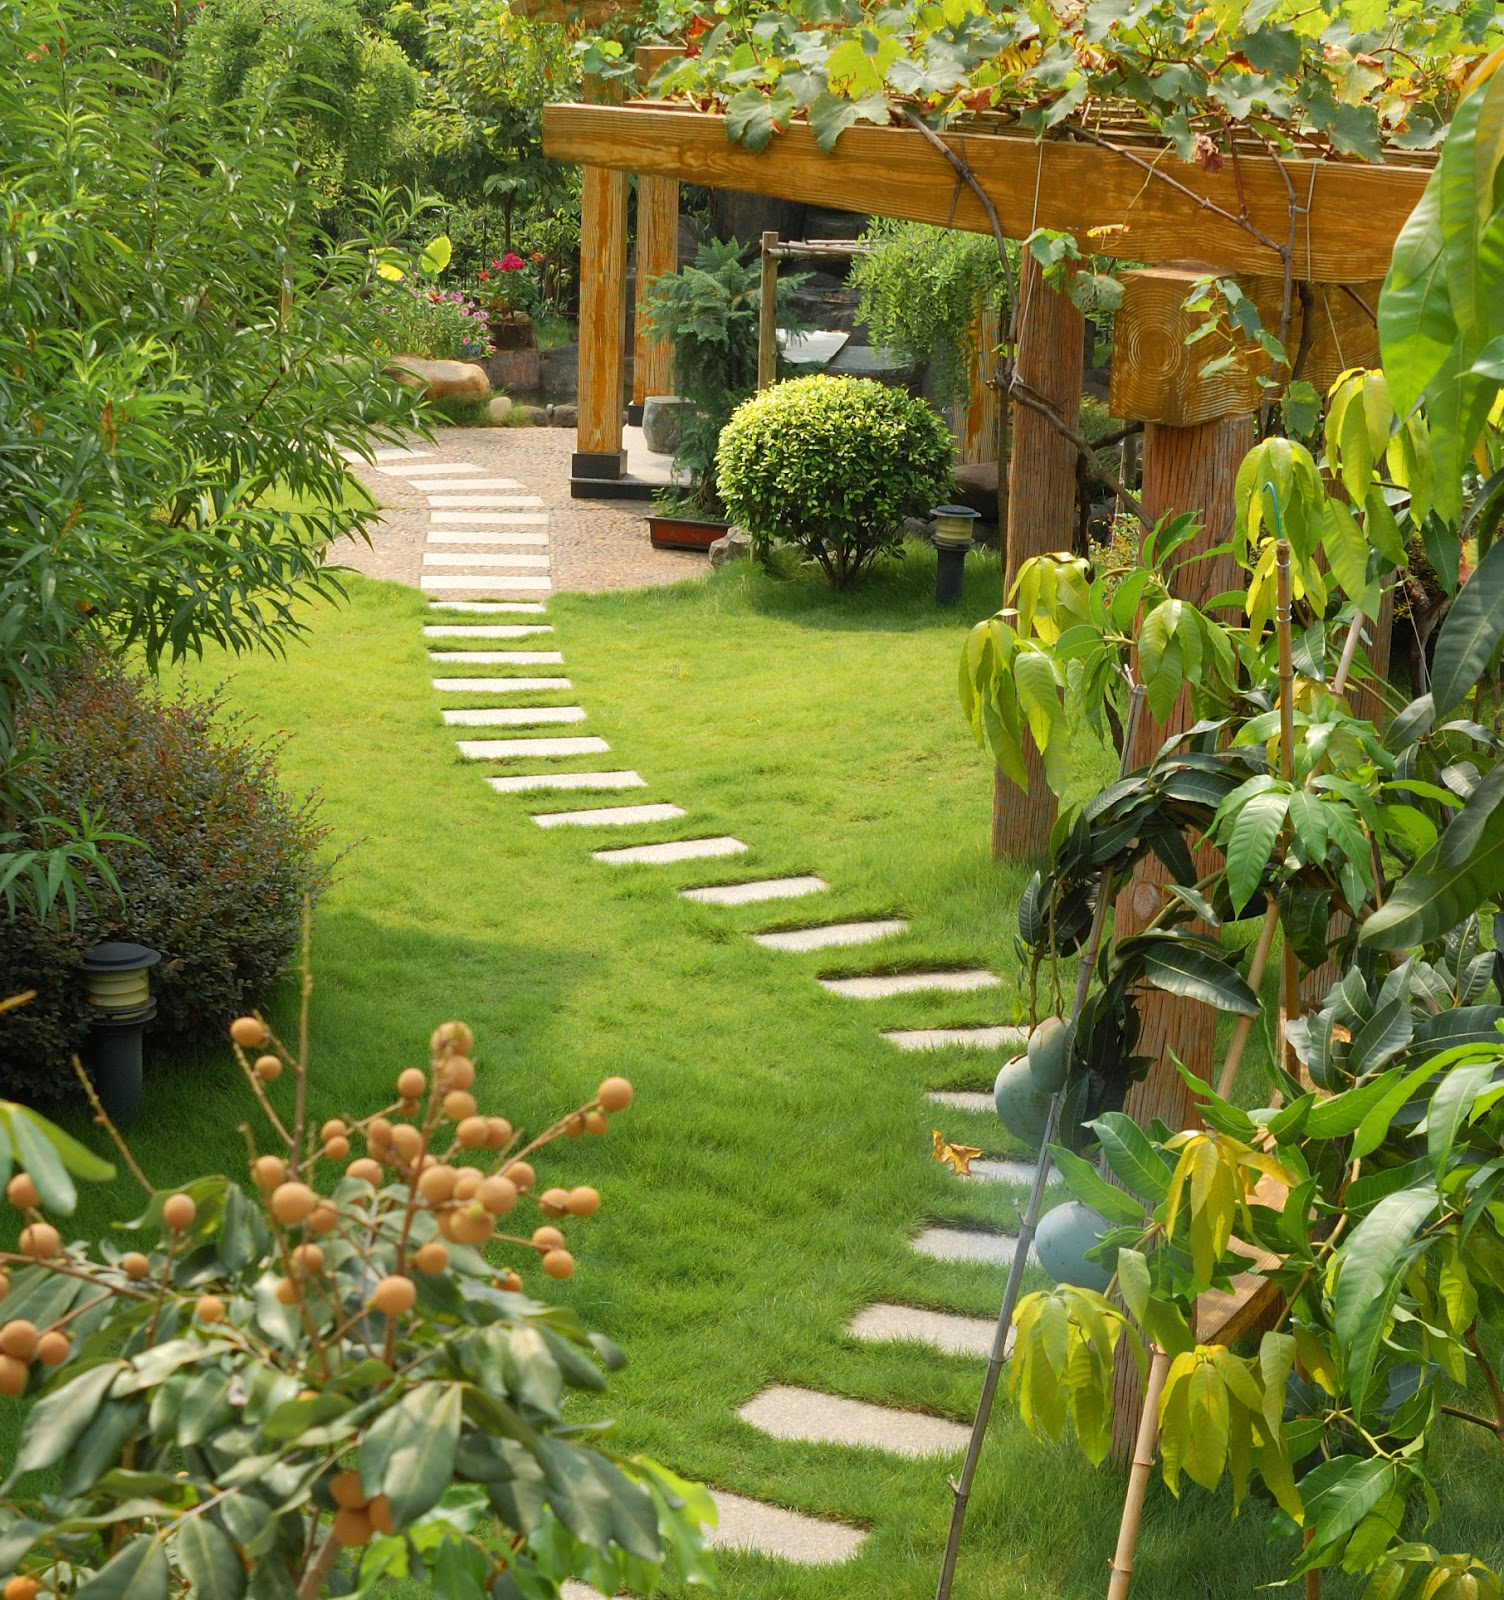 Get experience in the landscaping world in any way possible. Some of the best garden designers in the world started out working for landscaping companies. & Become a Garden Designer